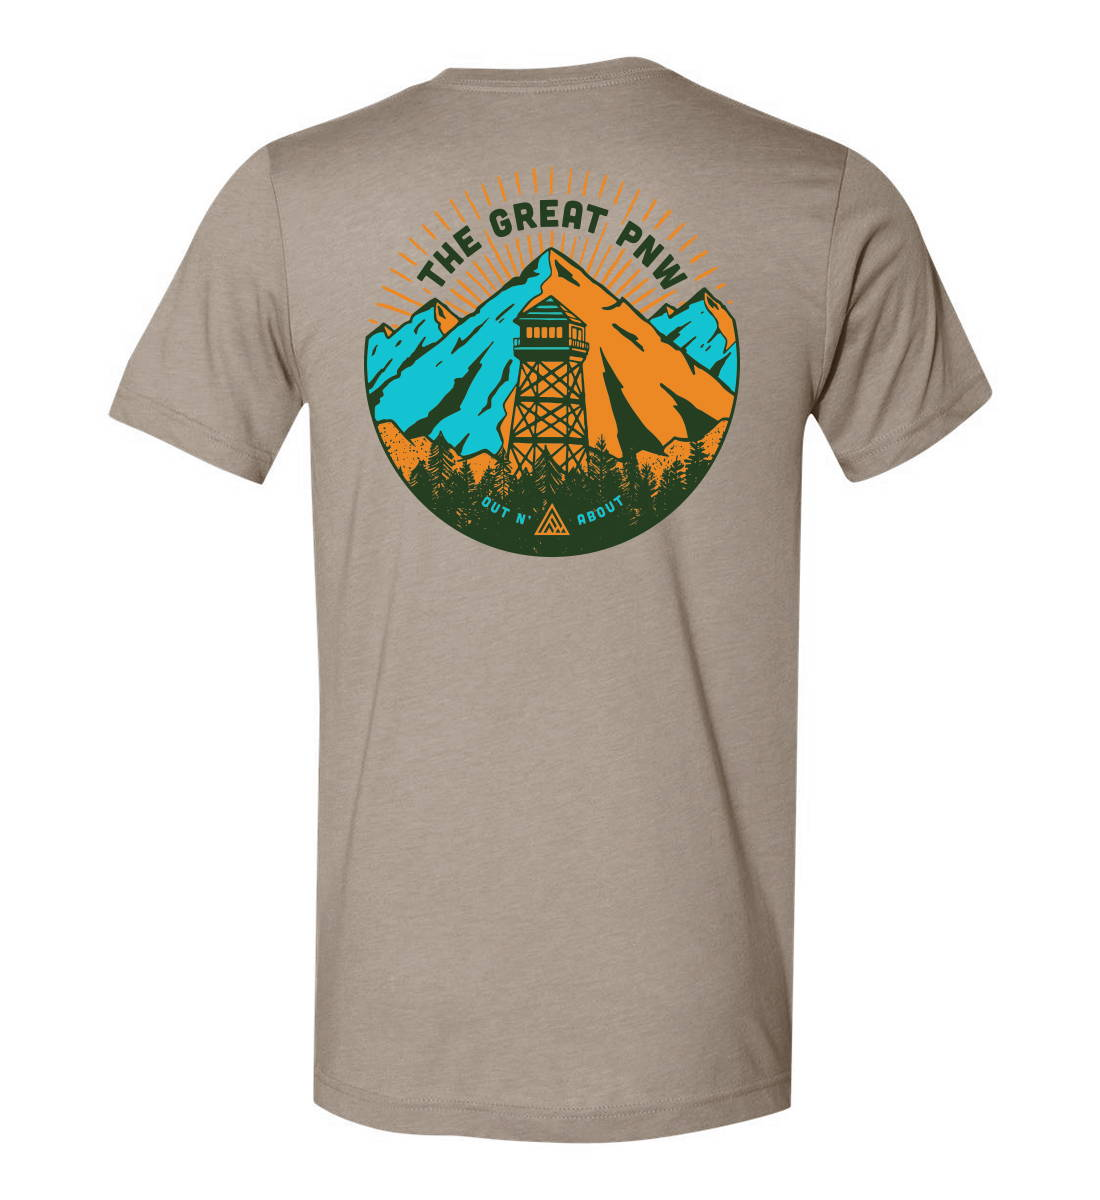 The Great PNW Observer Tee